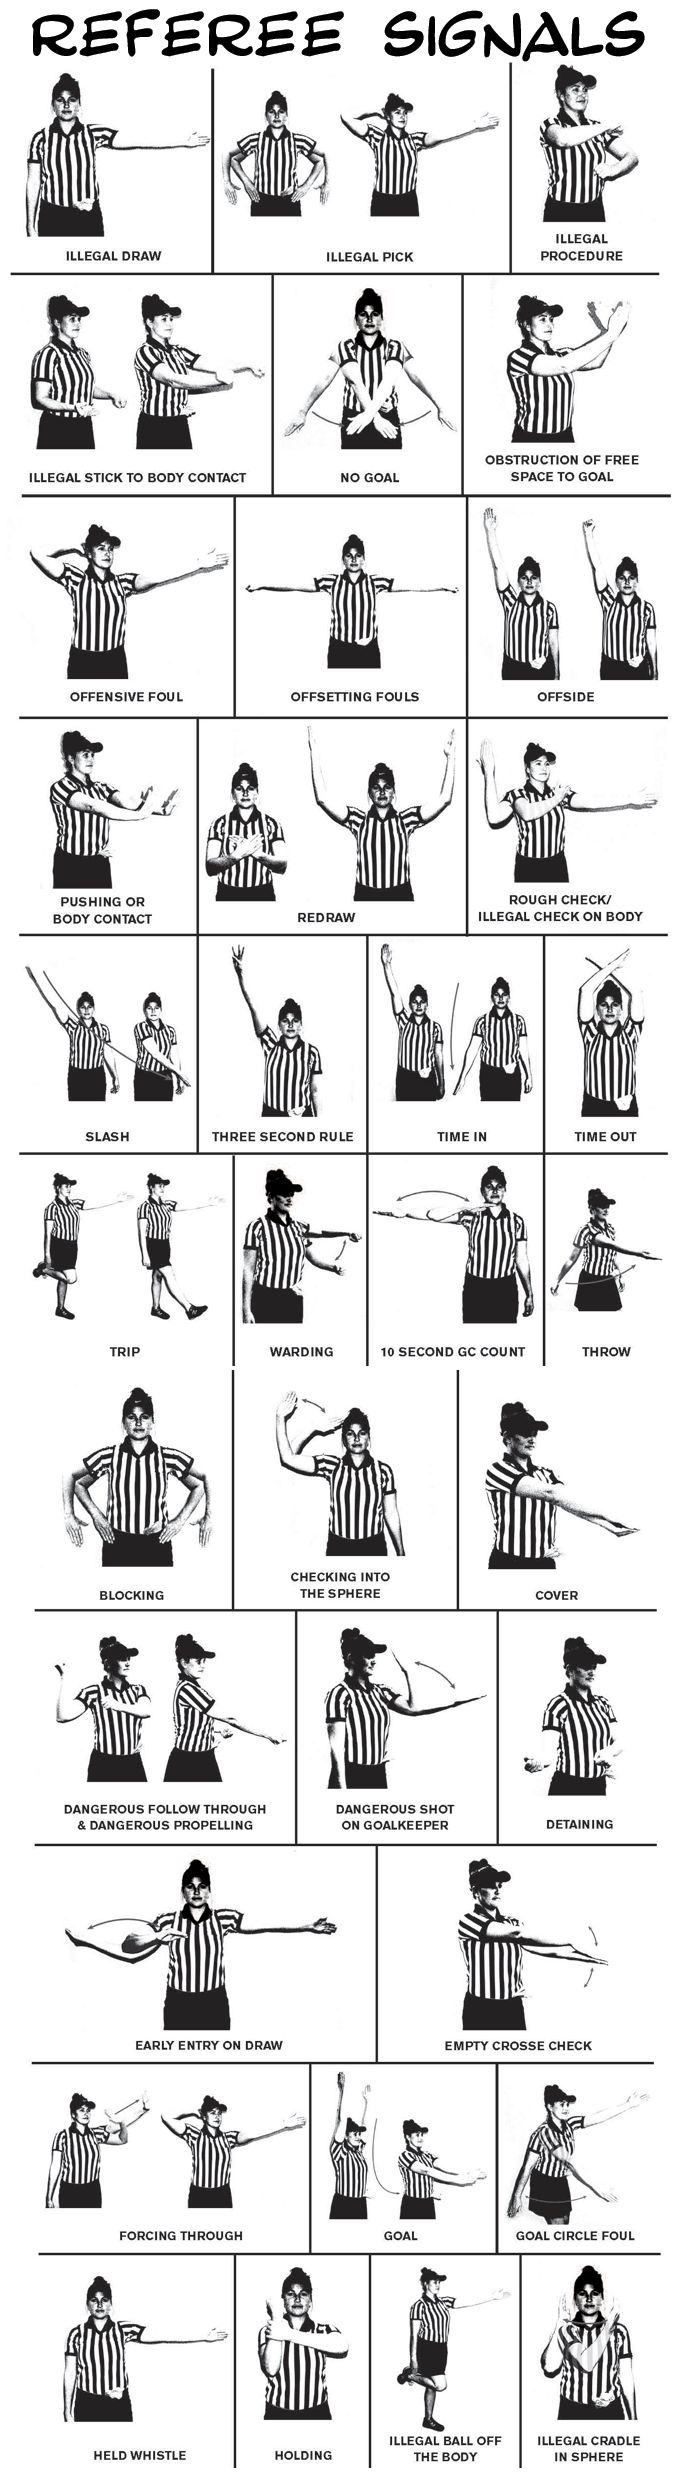 Womens/Girls Referee Signals